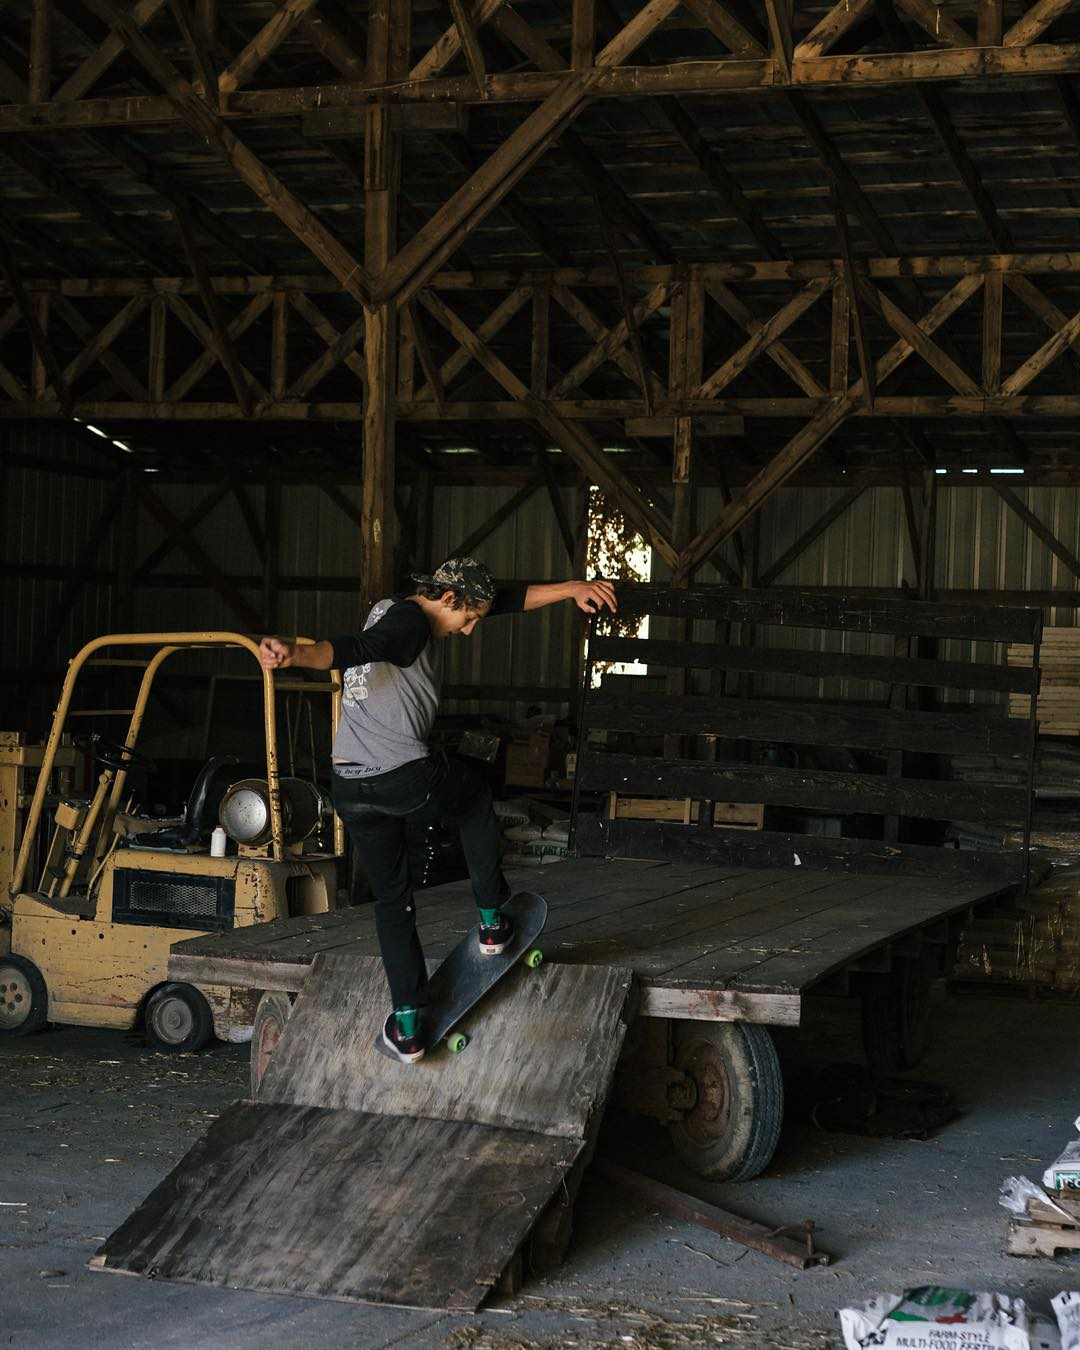 @damianschro using a Chipper on a pallet ramp in the middle of nowhere.